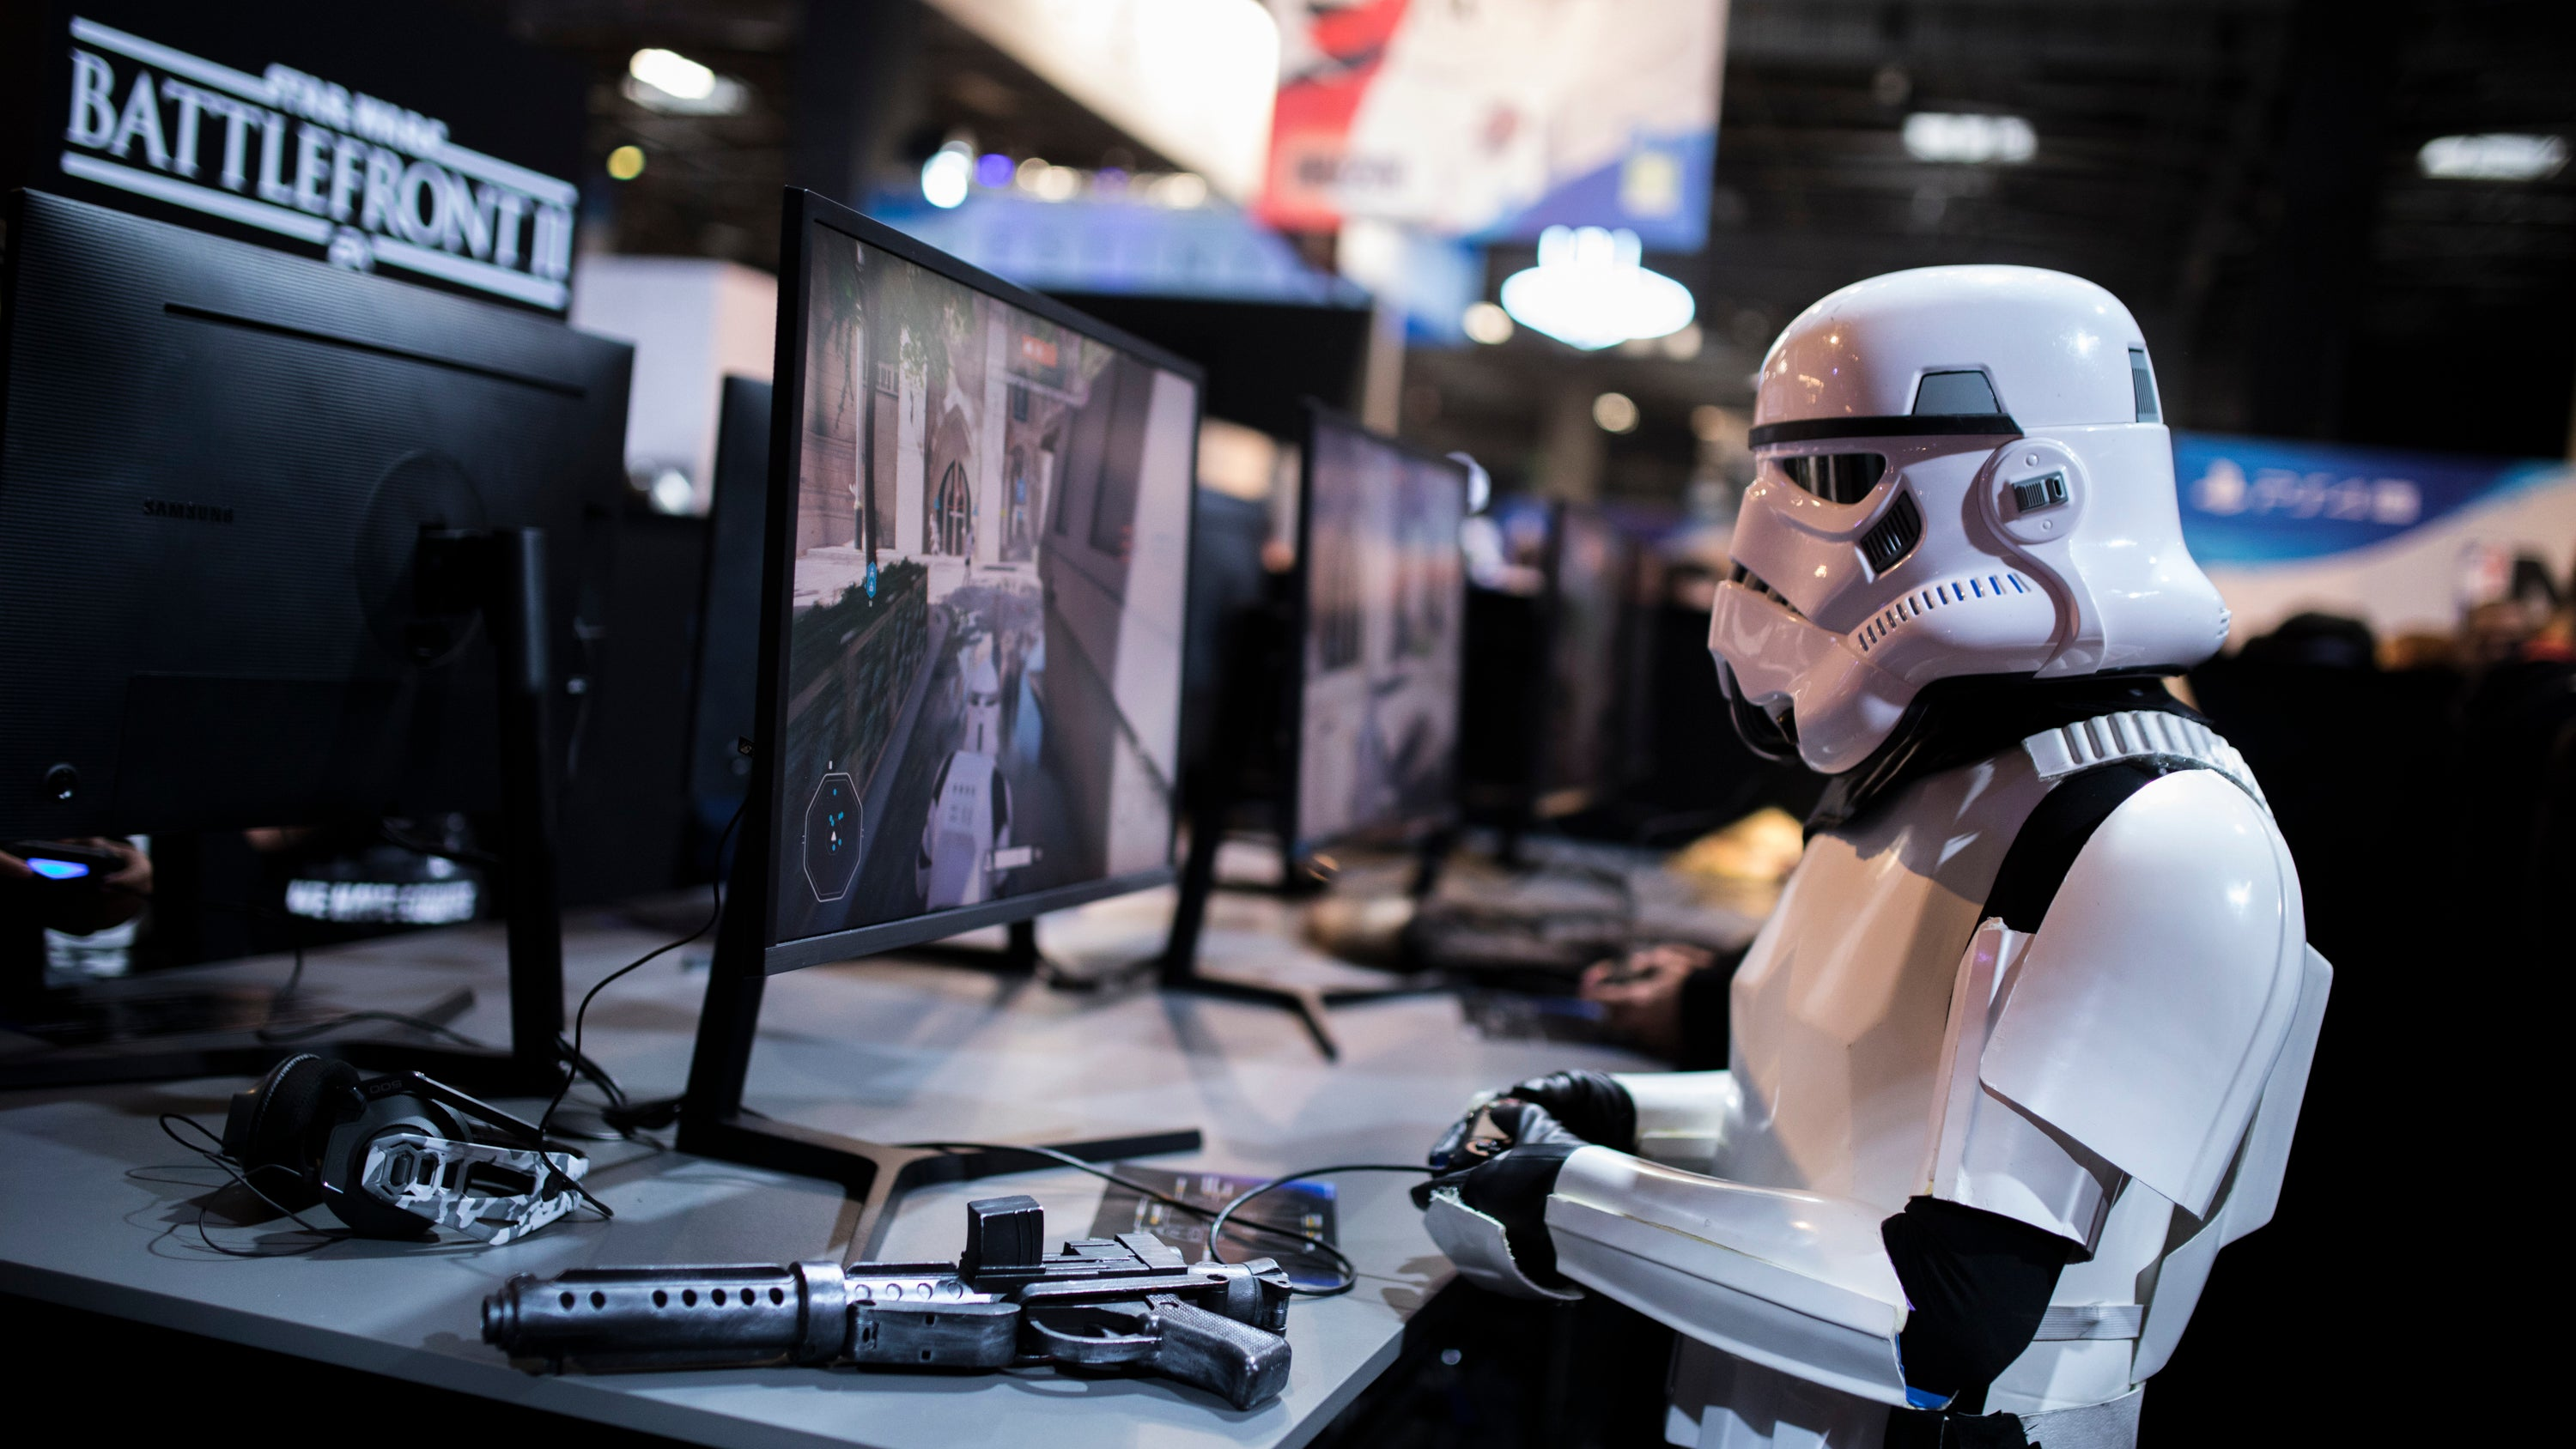 Belgian Gaming Commission Decides Battlefront 2-Style Loot Boxes Are Gambling, Wants Them Banned